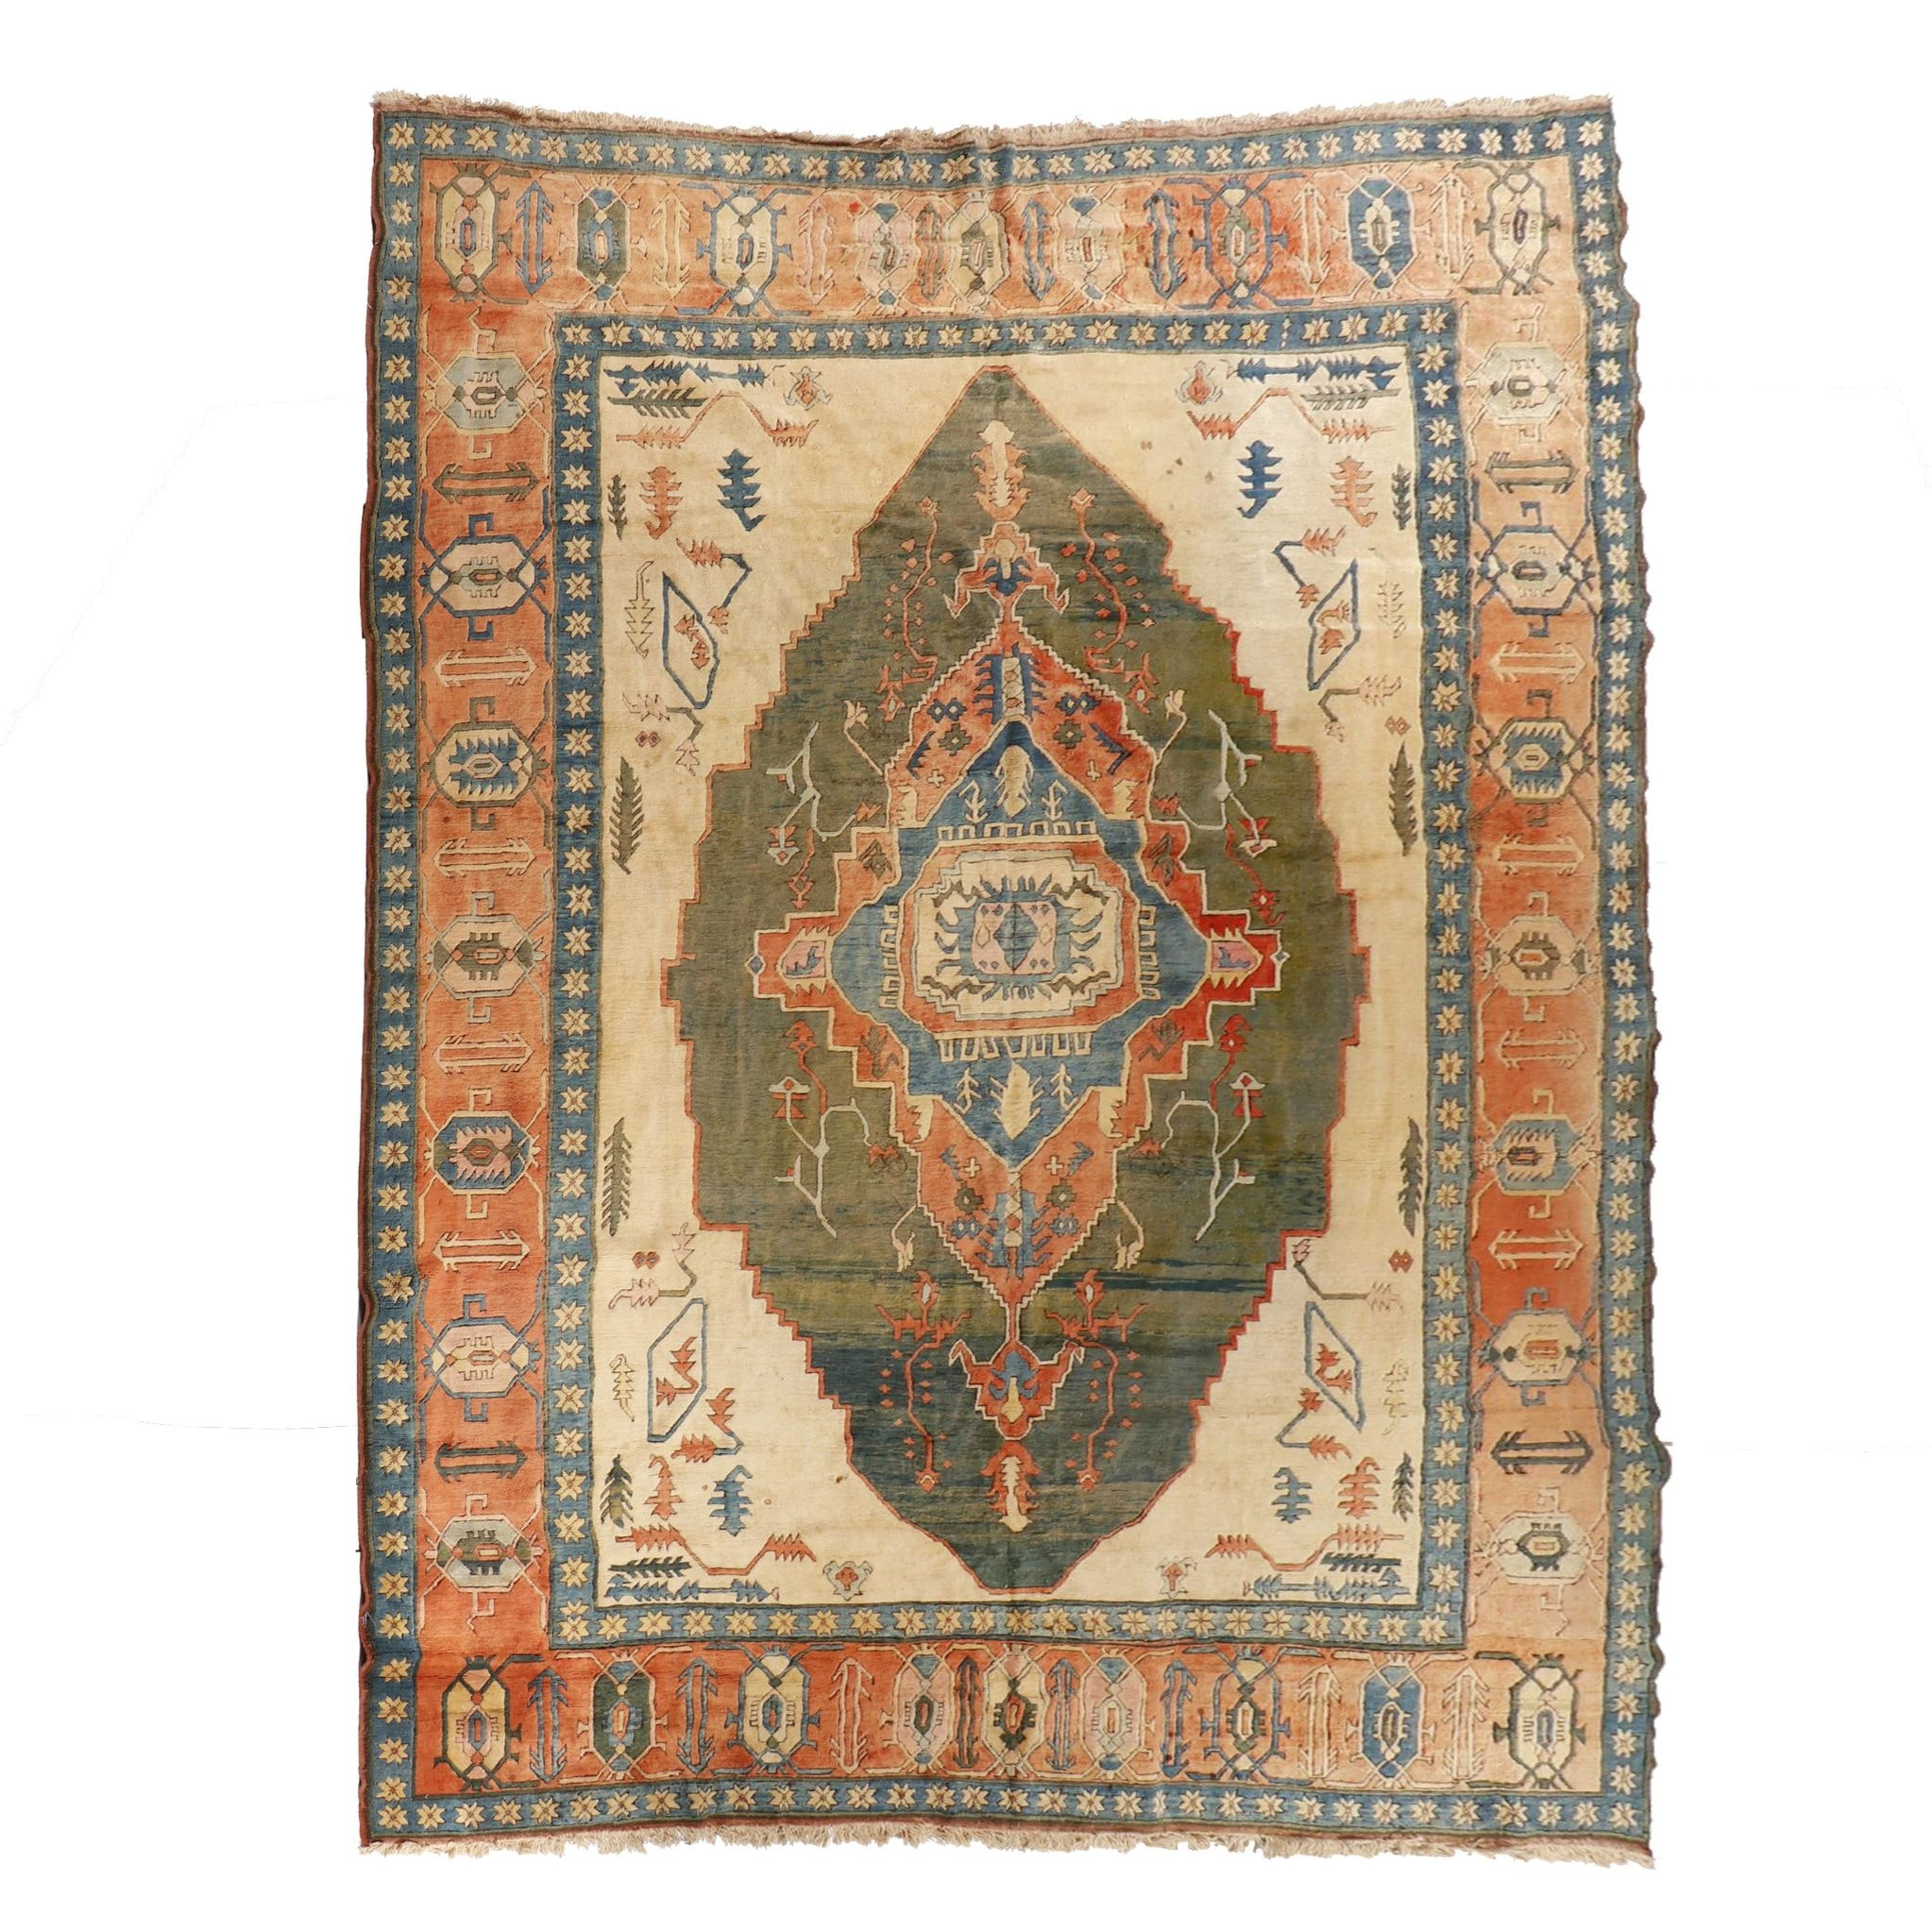 Hand-Knotted Turkish Konya Wool Room Sized Rug